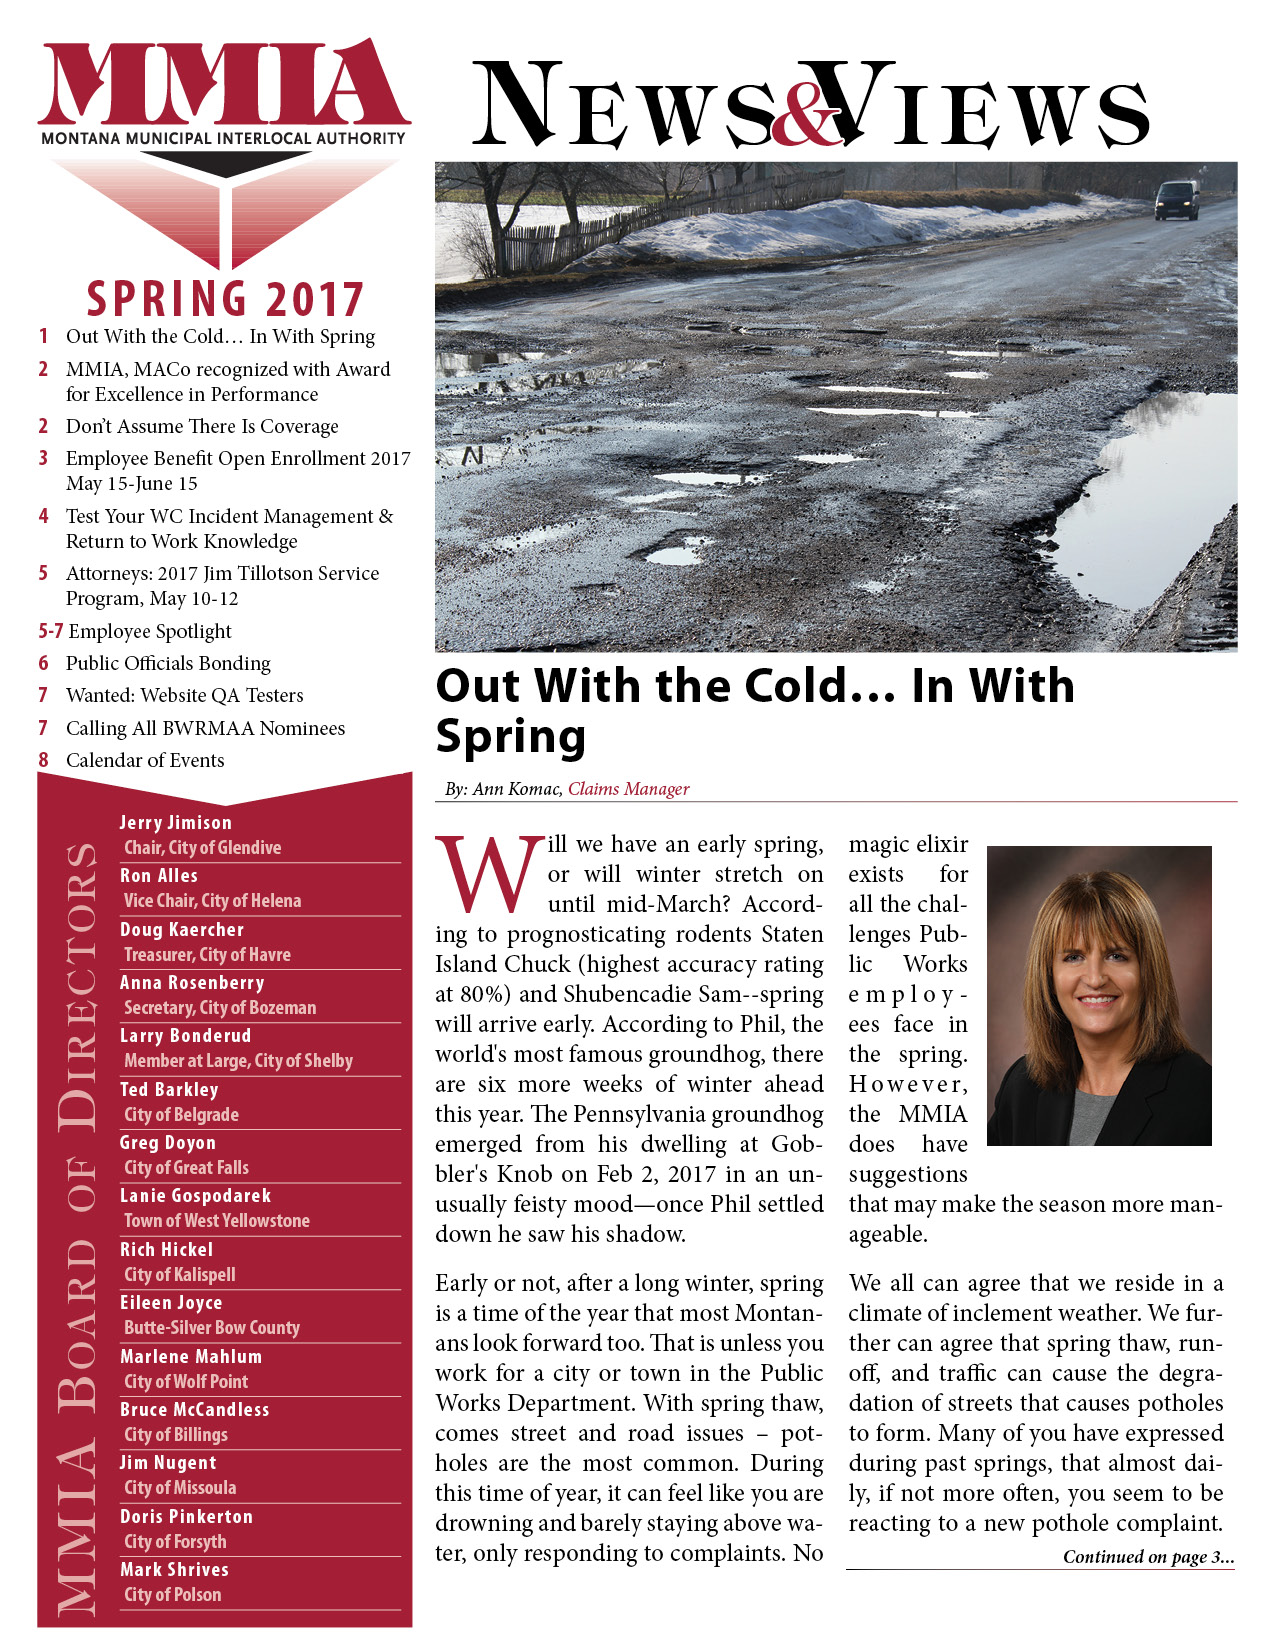 MMIA News & Views - Spring 2017